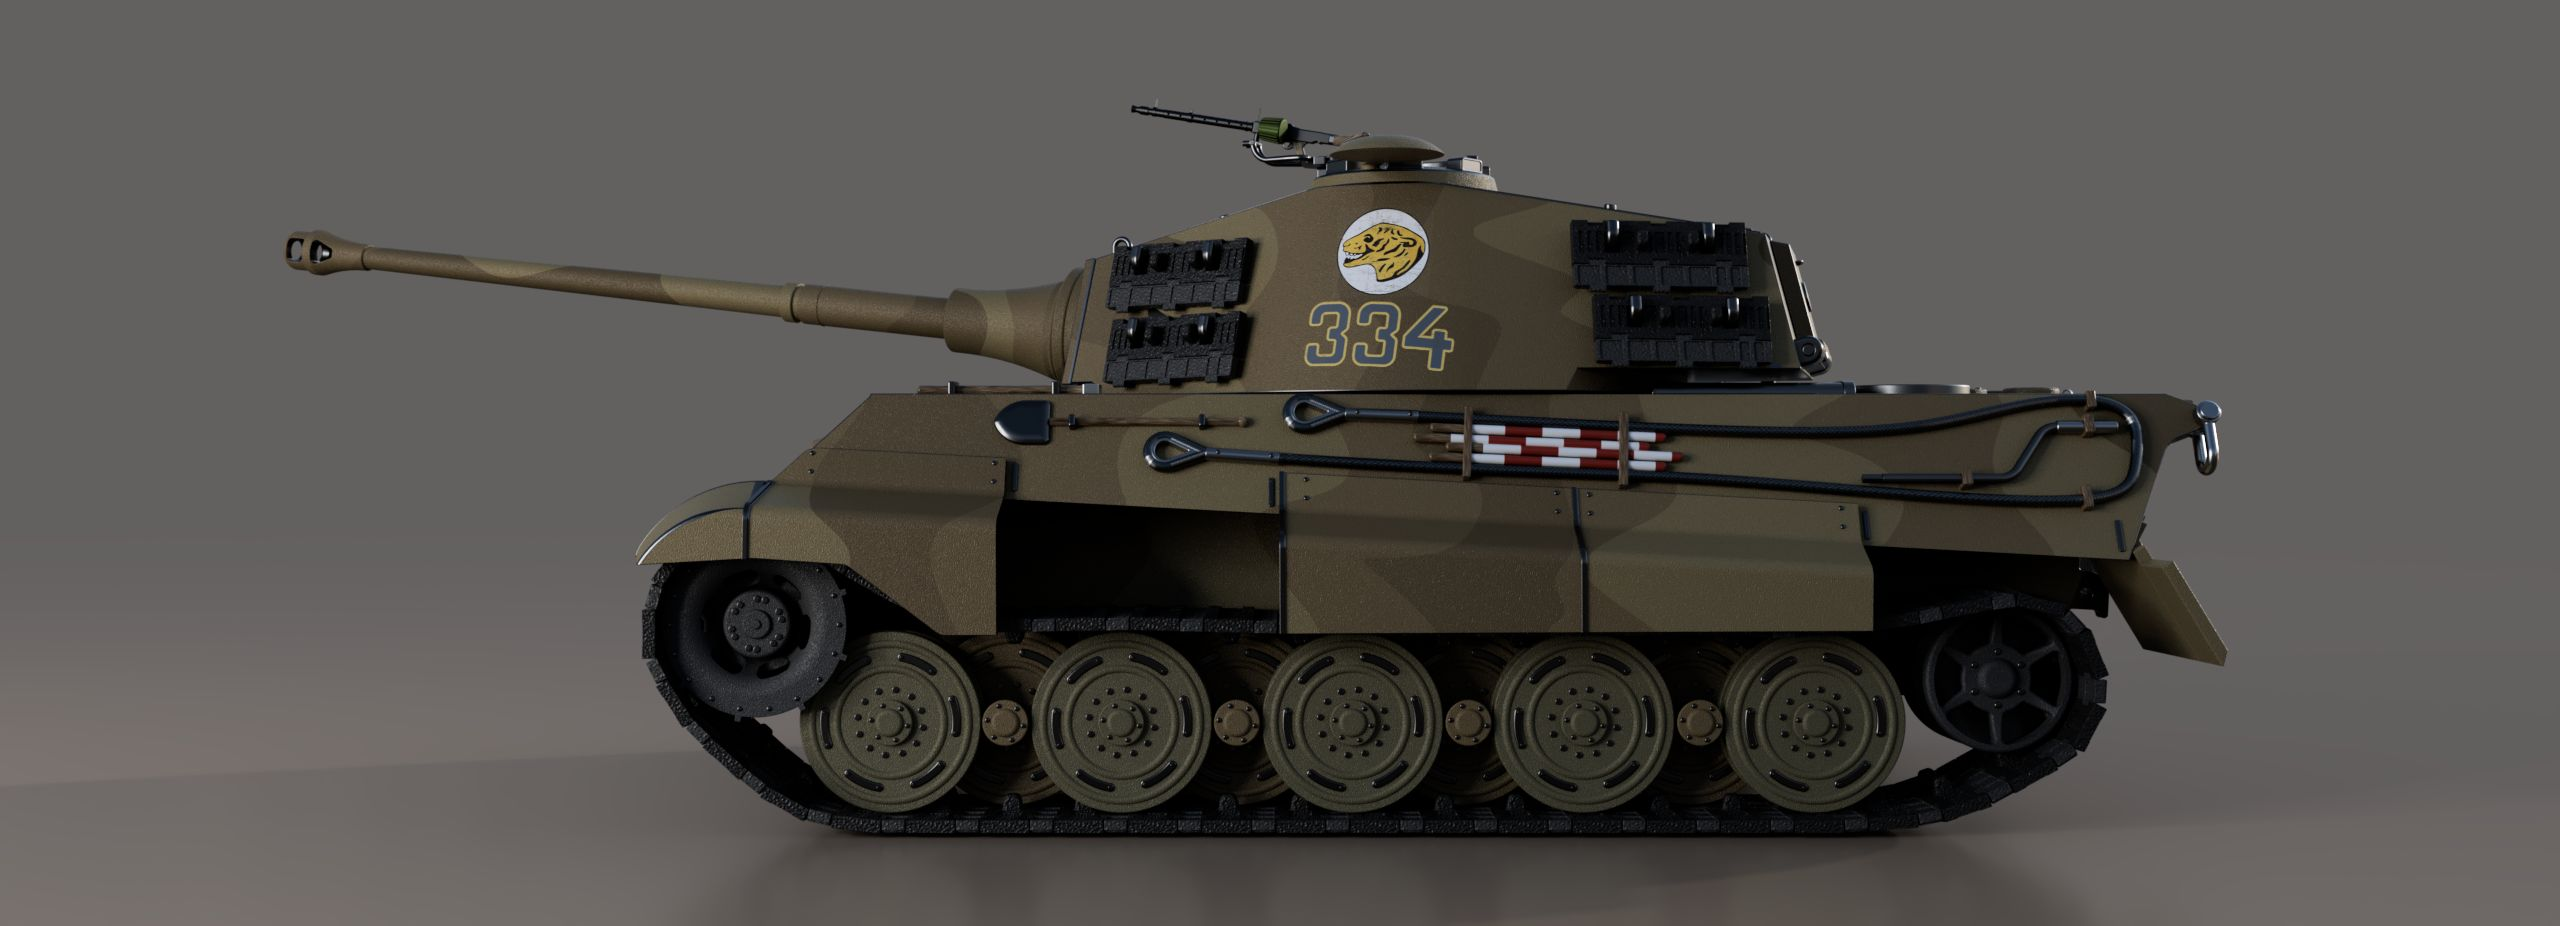 Tiger-ii-komplett-wuste-2018-sep-20-08-27-01am-000-customizedview2339018176-png-3500-3500